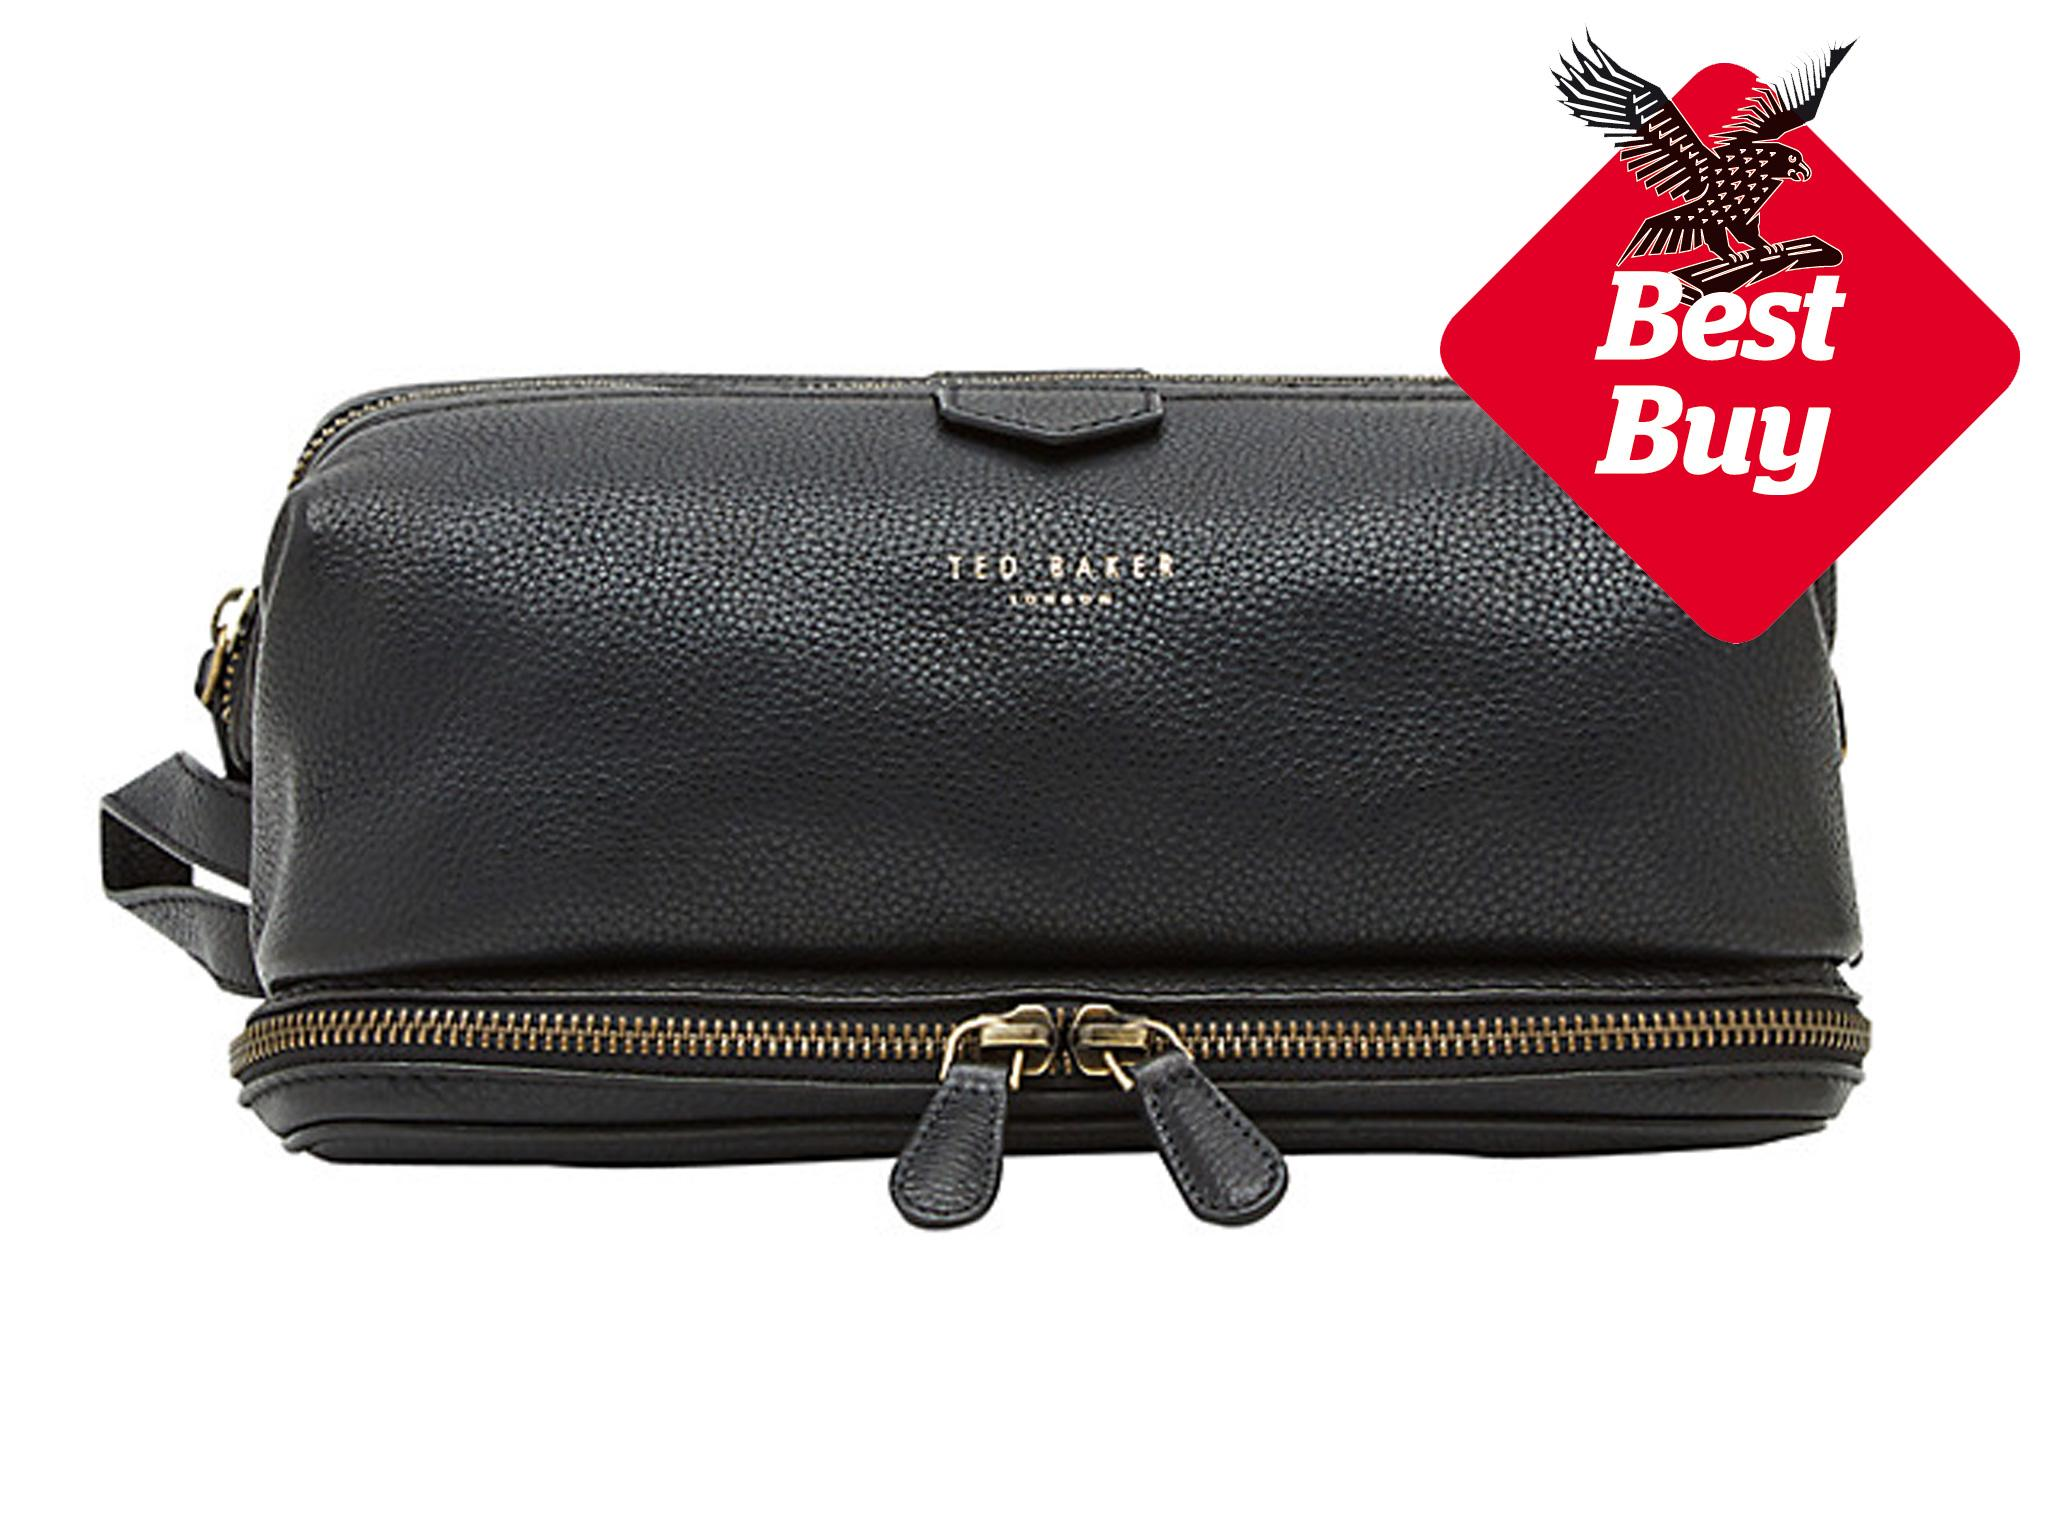 7bf7e16cf5 This bag from Ted Baker has all-over pebble grain leather